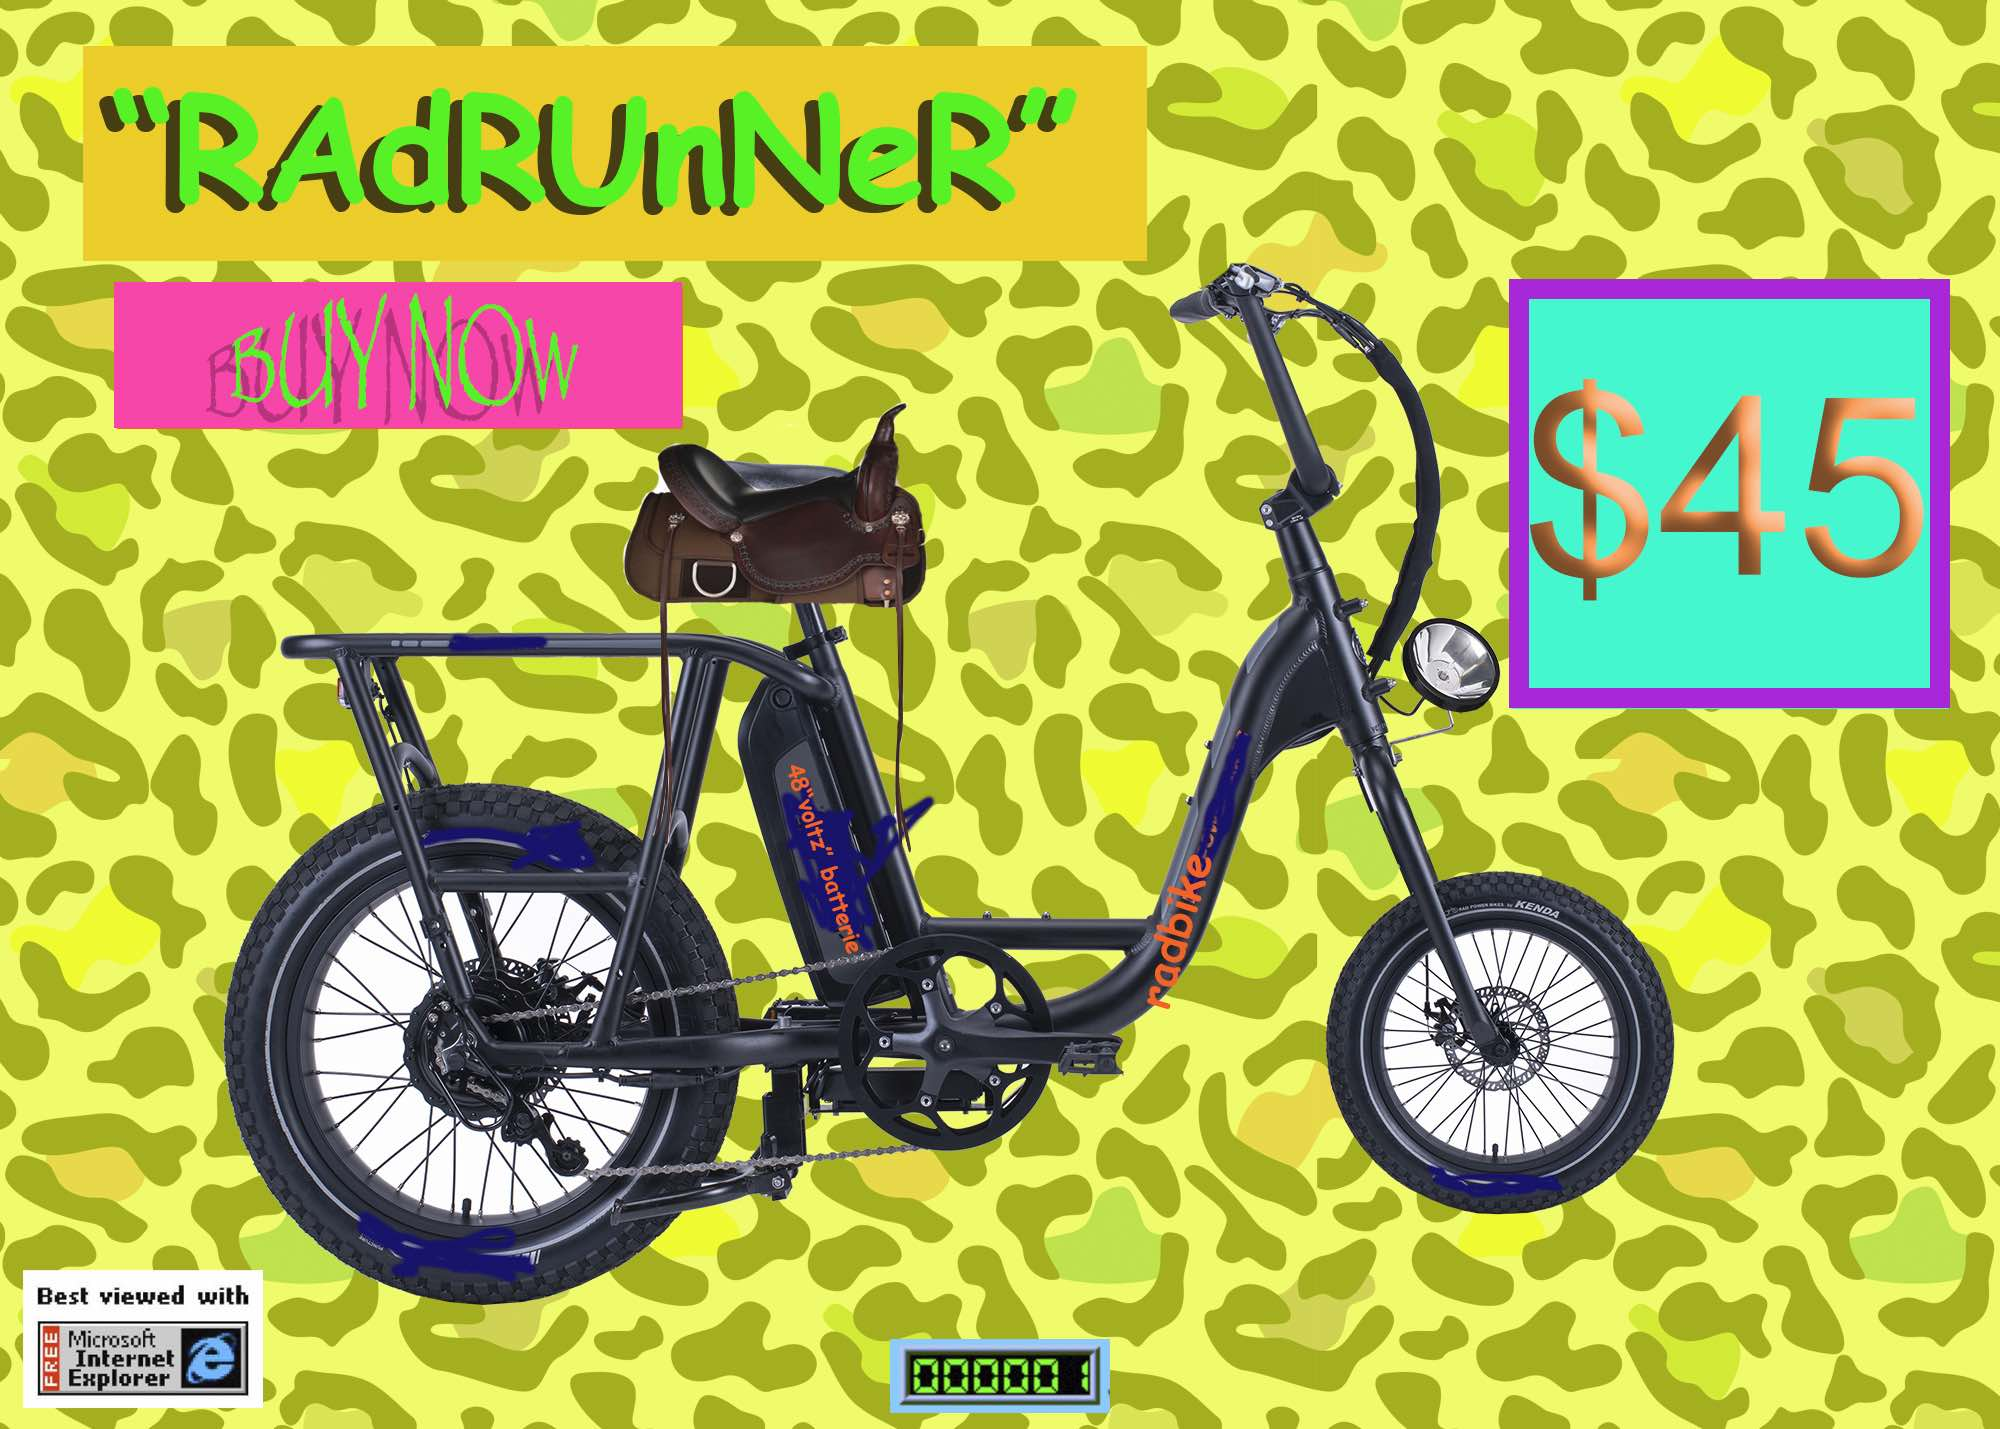 A parody ad showing a knock-off ebike with out of date graphics.